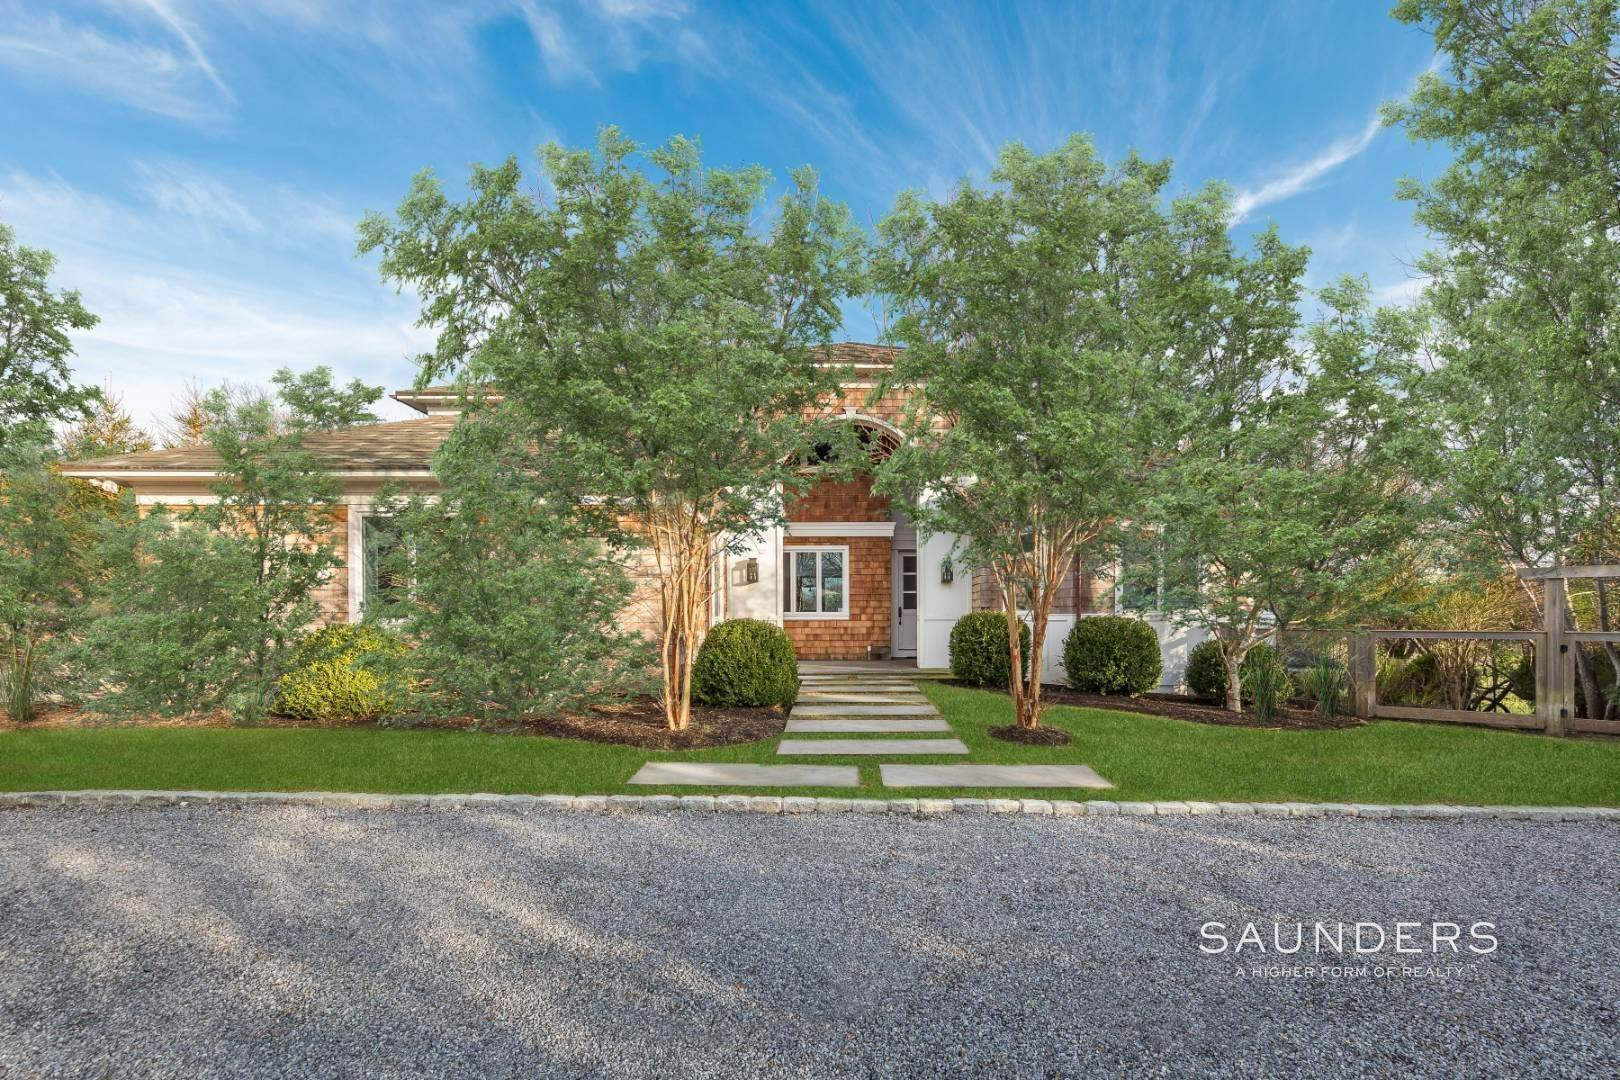 Single Family Homes for Sale at Turnkey Masterpiece On The Montauk Golf Course - 5,000+sqft 38 Fairlawn Dr, Montauk, East Hampton Town, NY 11954